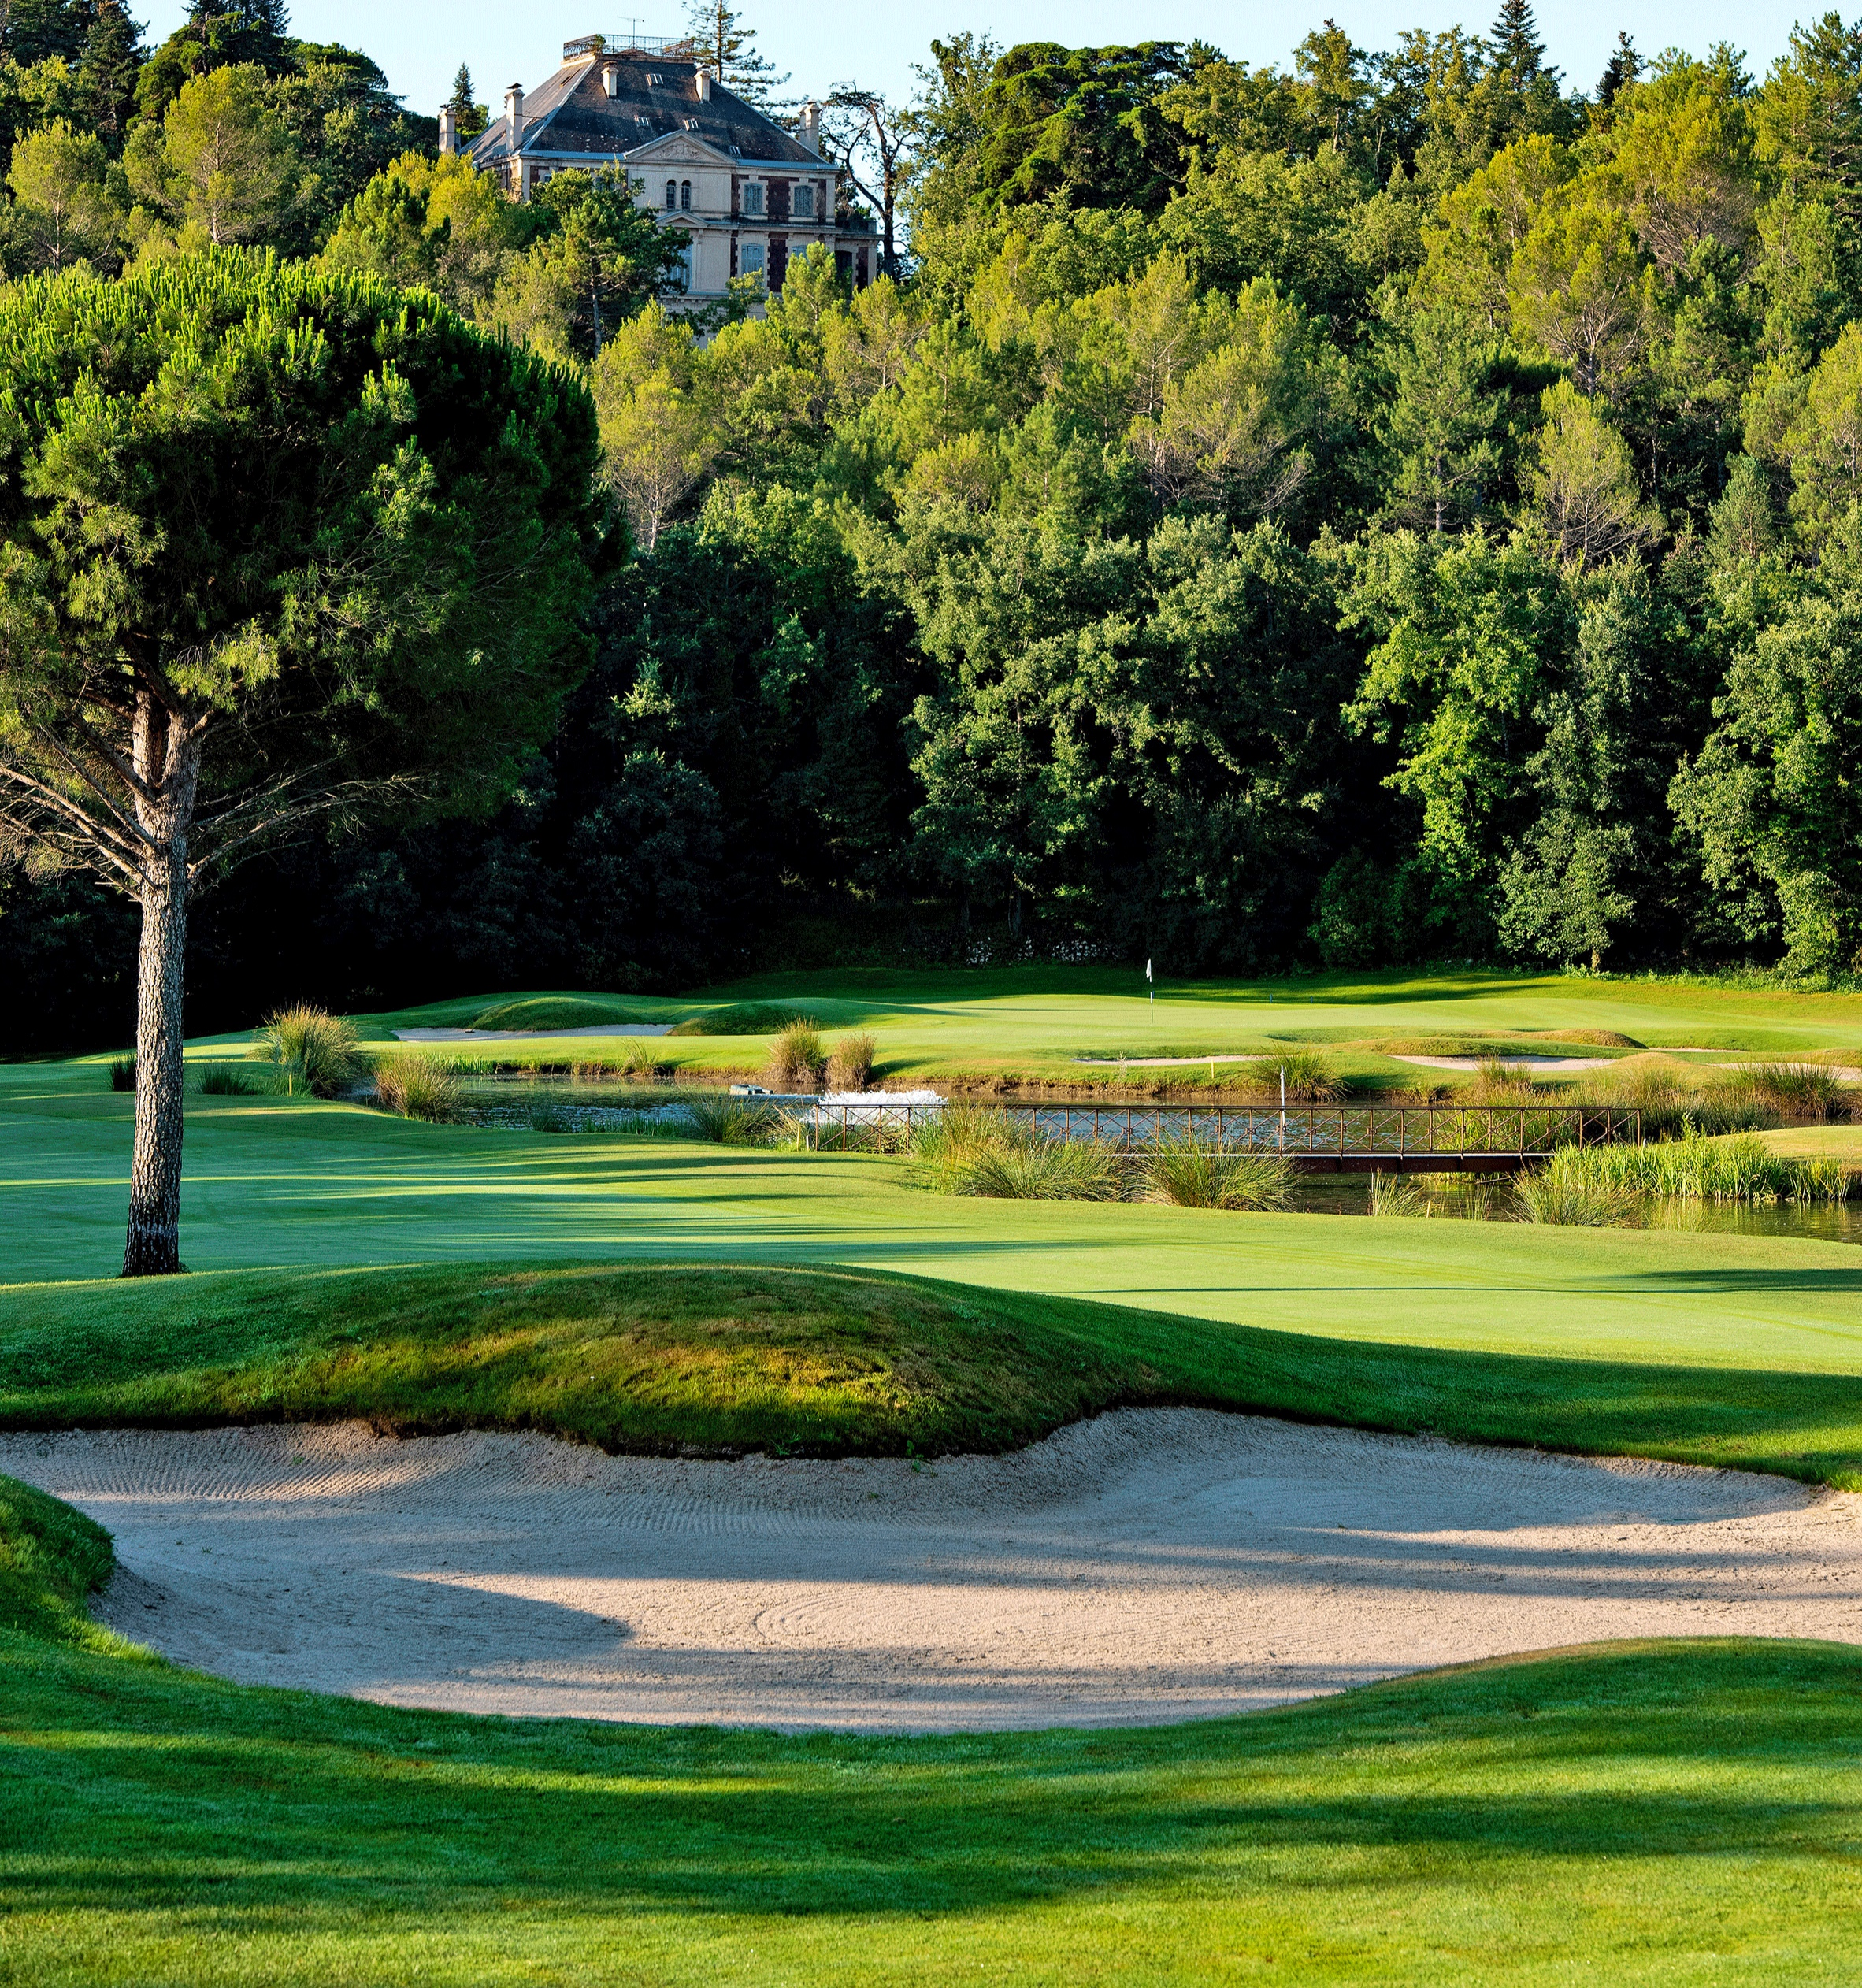 The wonderful par 5 6th hole at Terre Blanche's Chateau course.